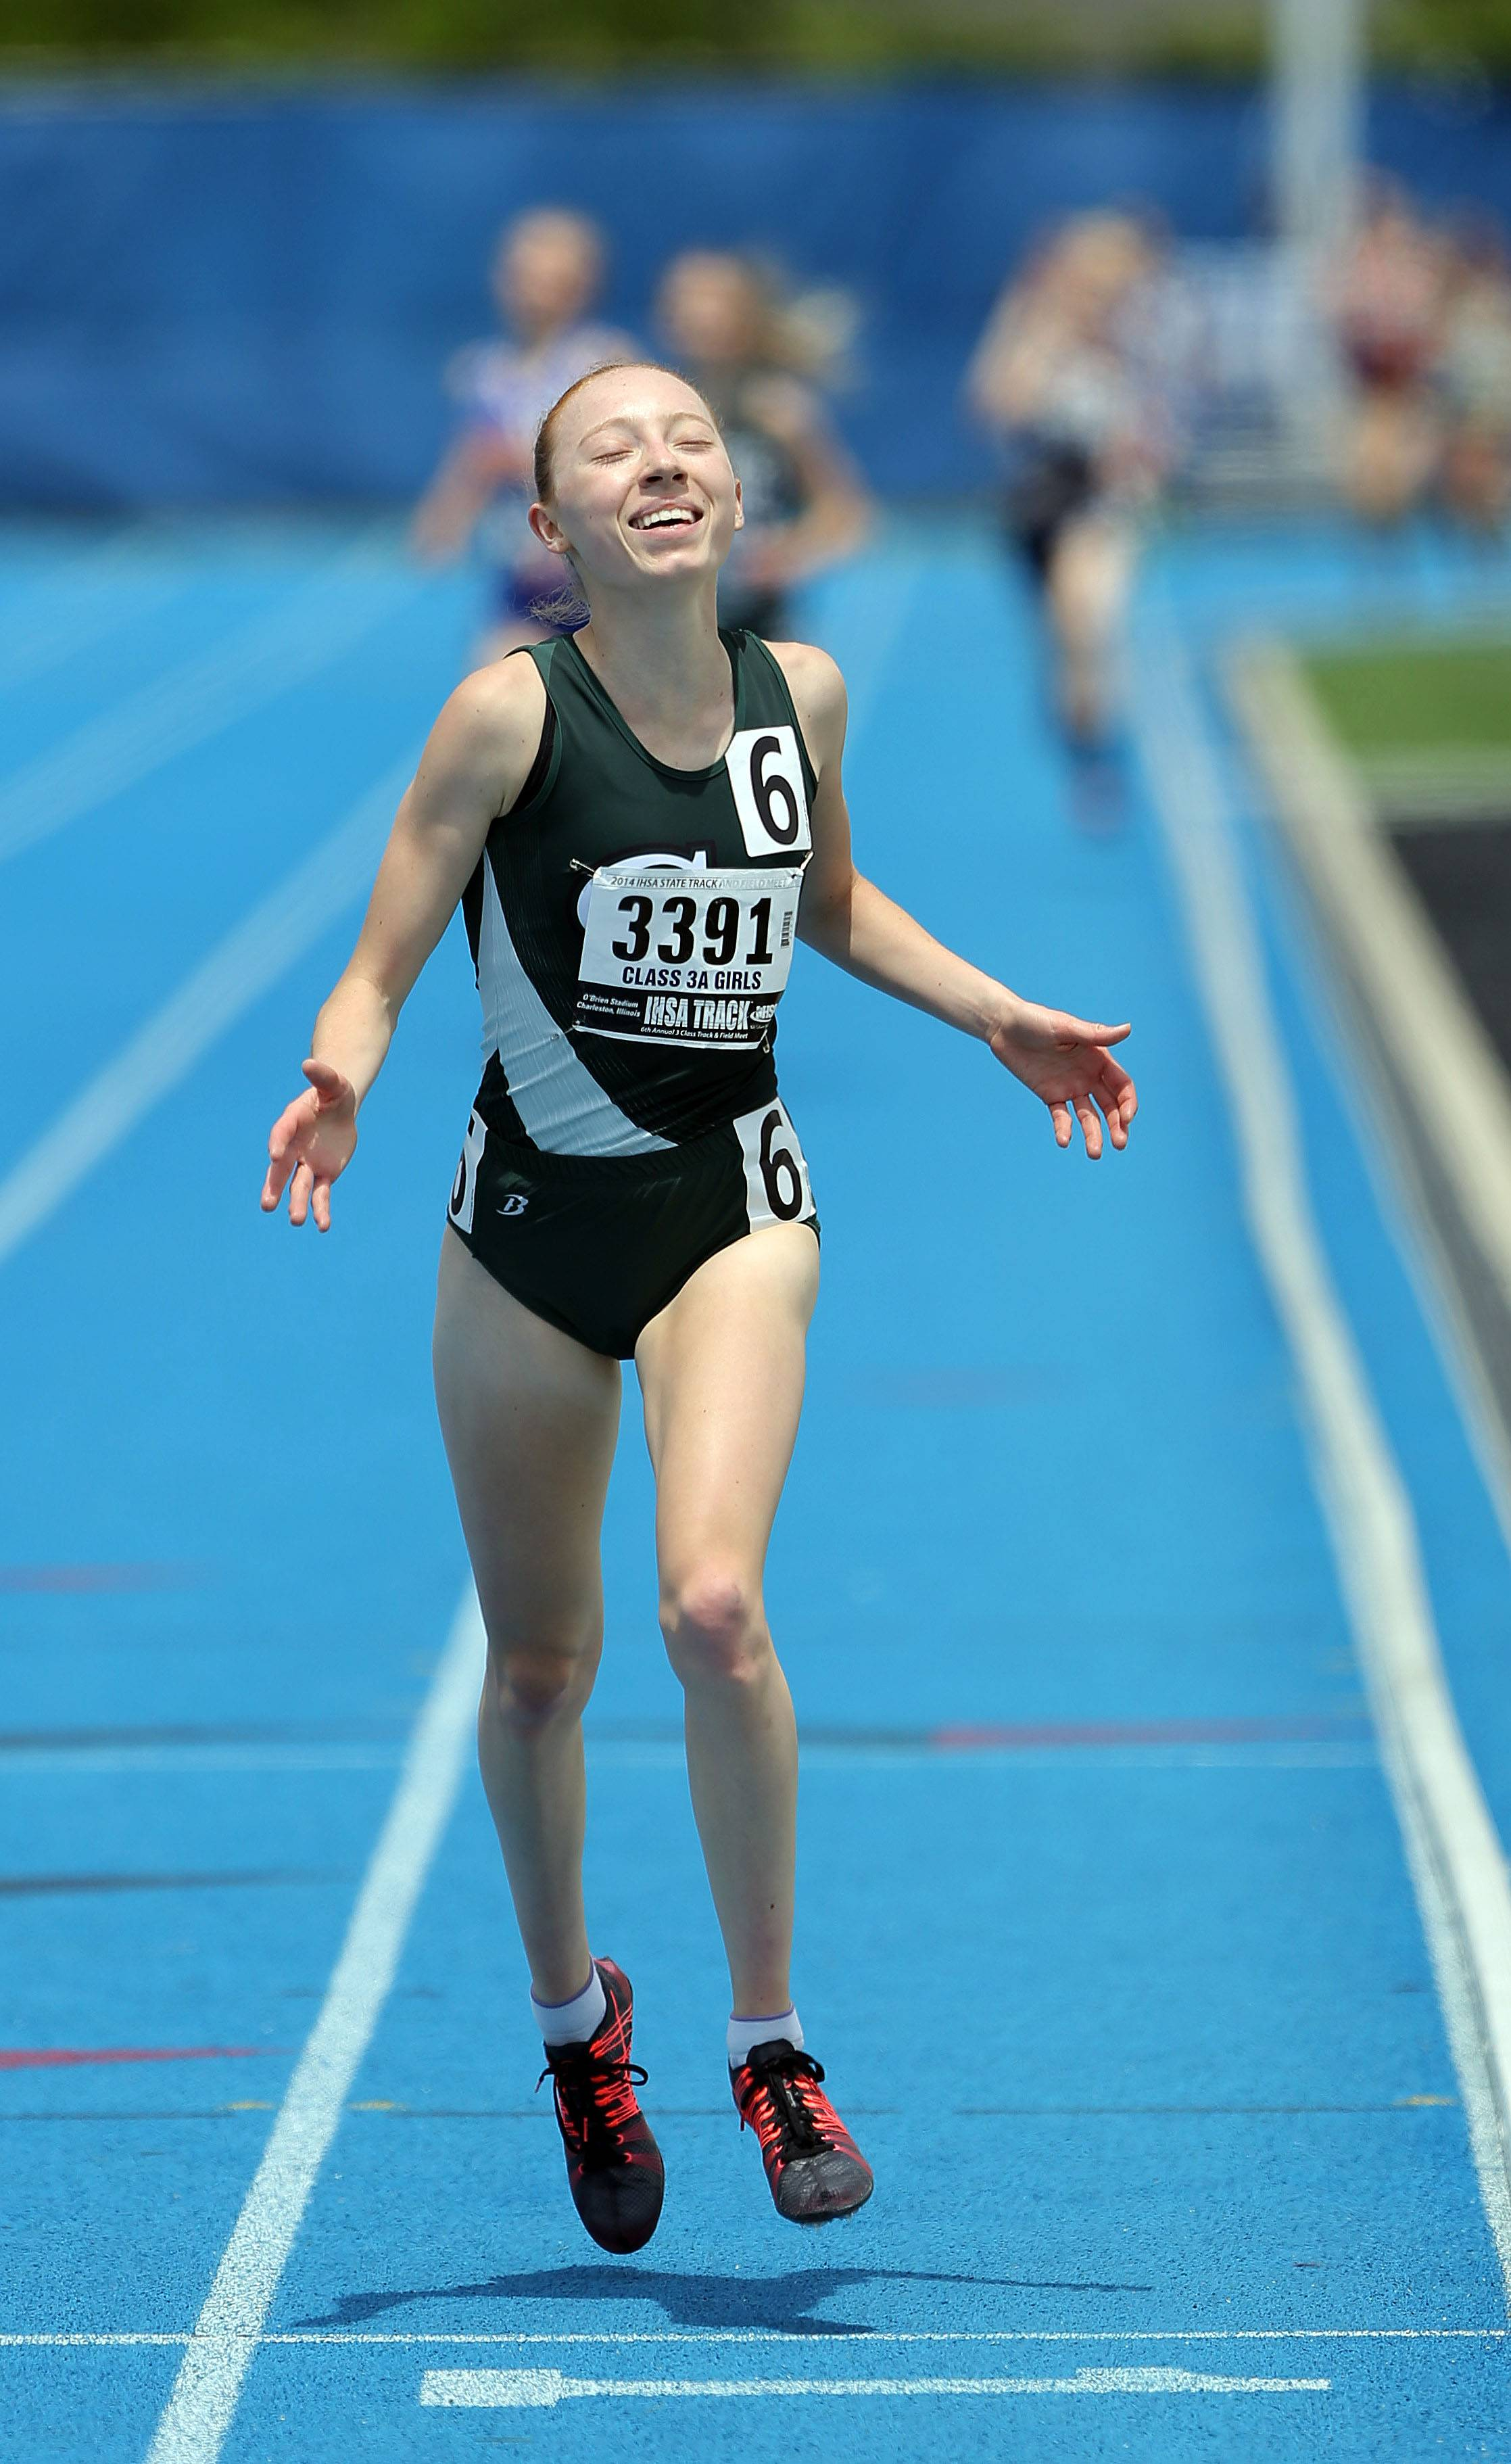 Glenbard West's Madeline Perez wins the Class 3A 3,200-meter run during the girls track and field state finals at Eastern Illinois University in Charleston Saturday.